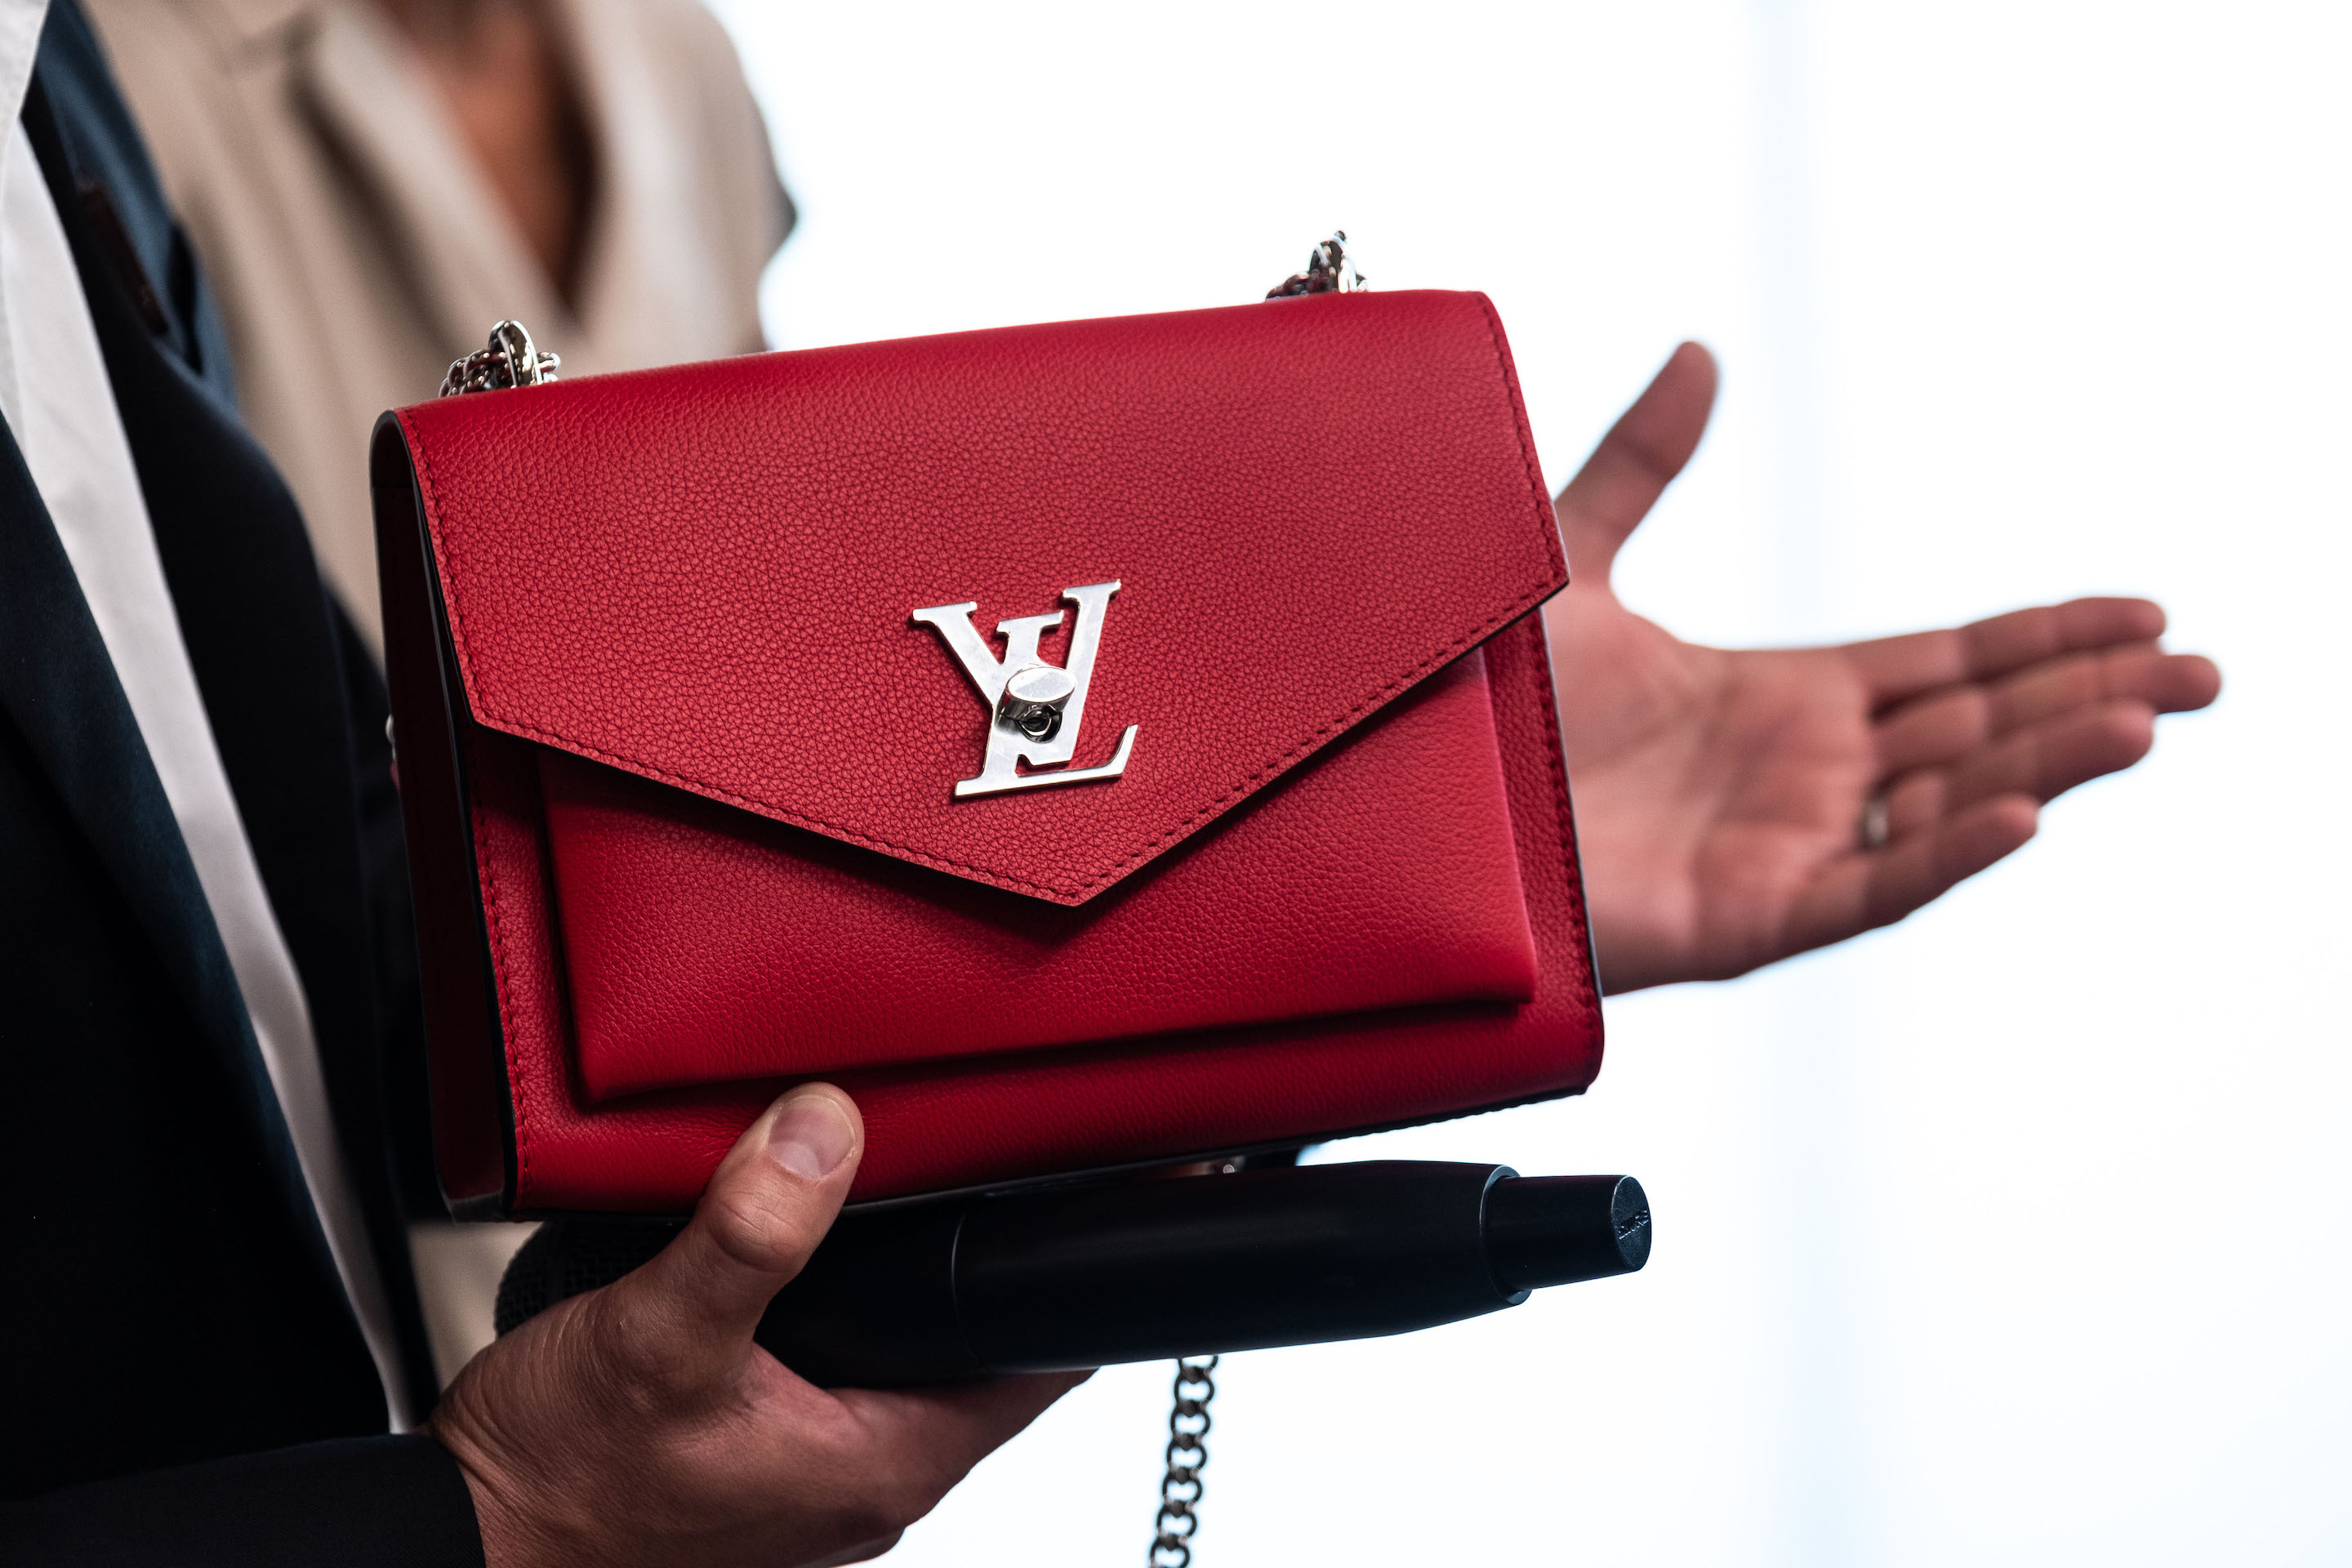 With new punitive U.S. tariffs, LVMH and other European luxury fashion, spirits and Champagne companies will likely be charging higher for exports to America.